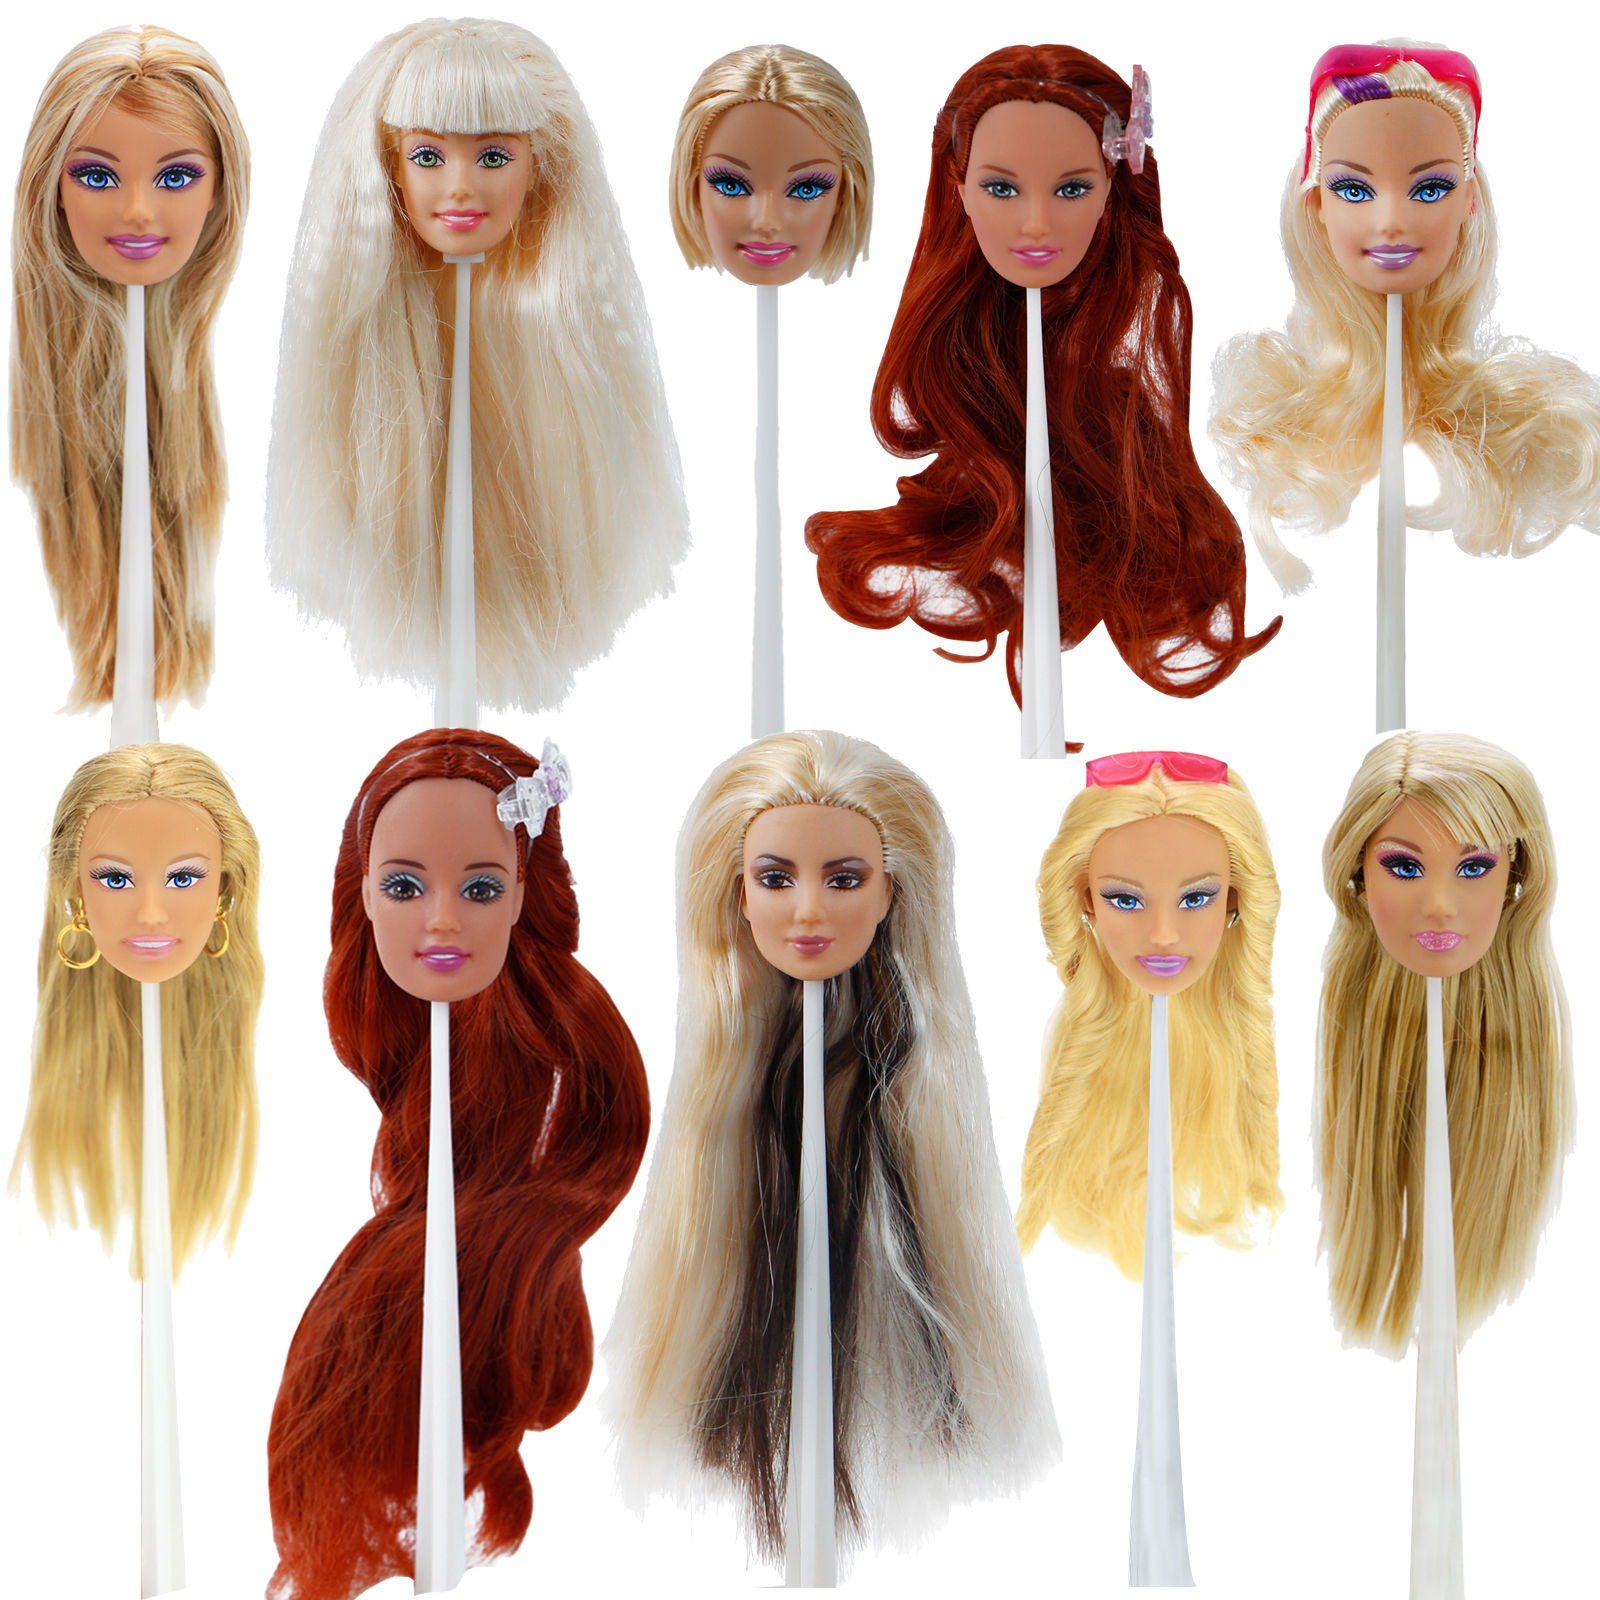 High Quality Fashion Doll Head Mixed Style Face Makeup Straight Curly Hair Mix Style Accessories For 12